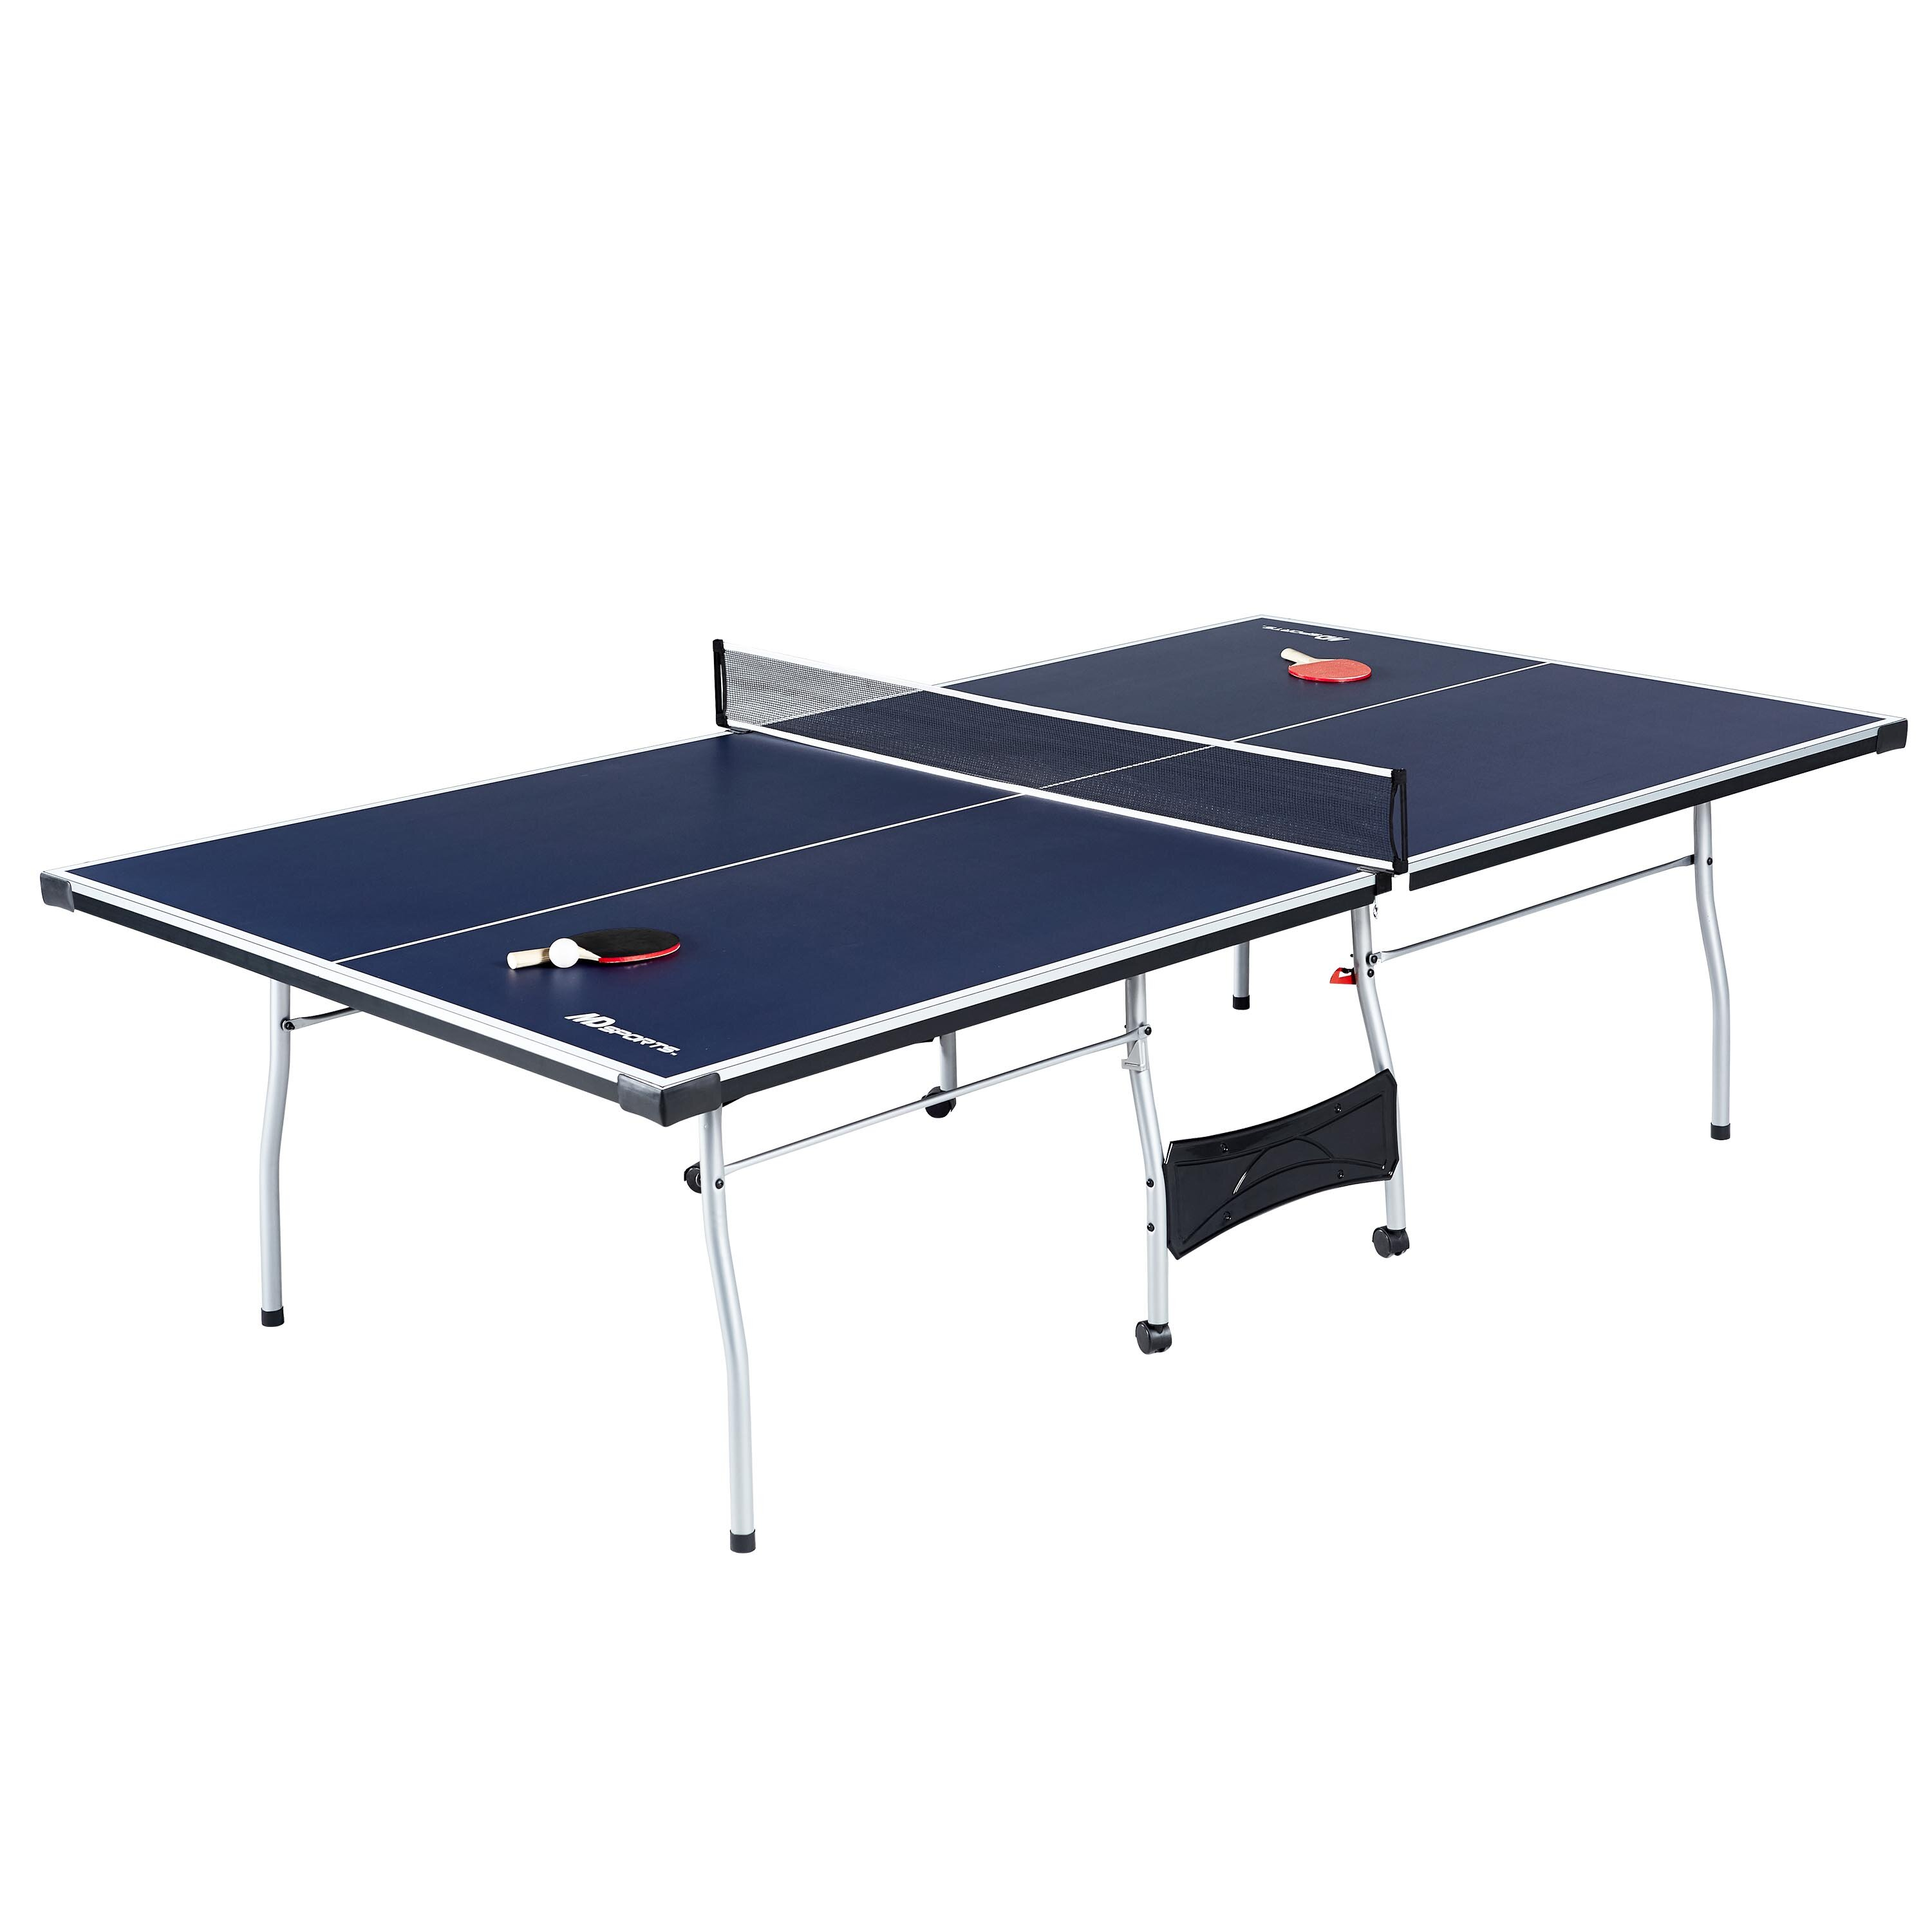 Md sports official size indoor table tennis table - Measurements of a table tennis table ...